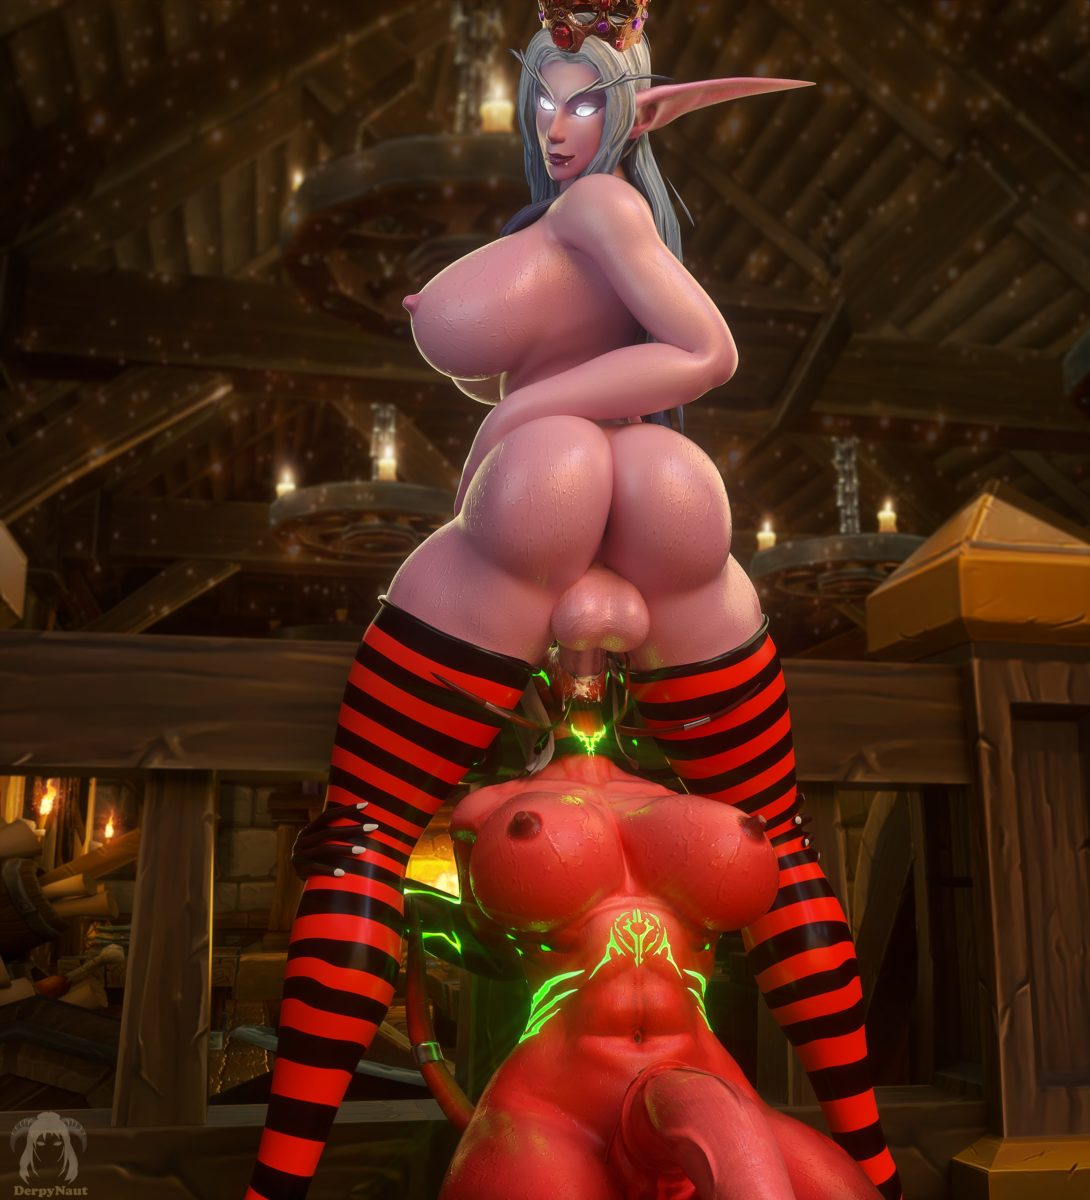 Derpynaut - Futanari alynisa eredar night elf world of warcraft hentai rule 34 muscle porn